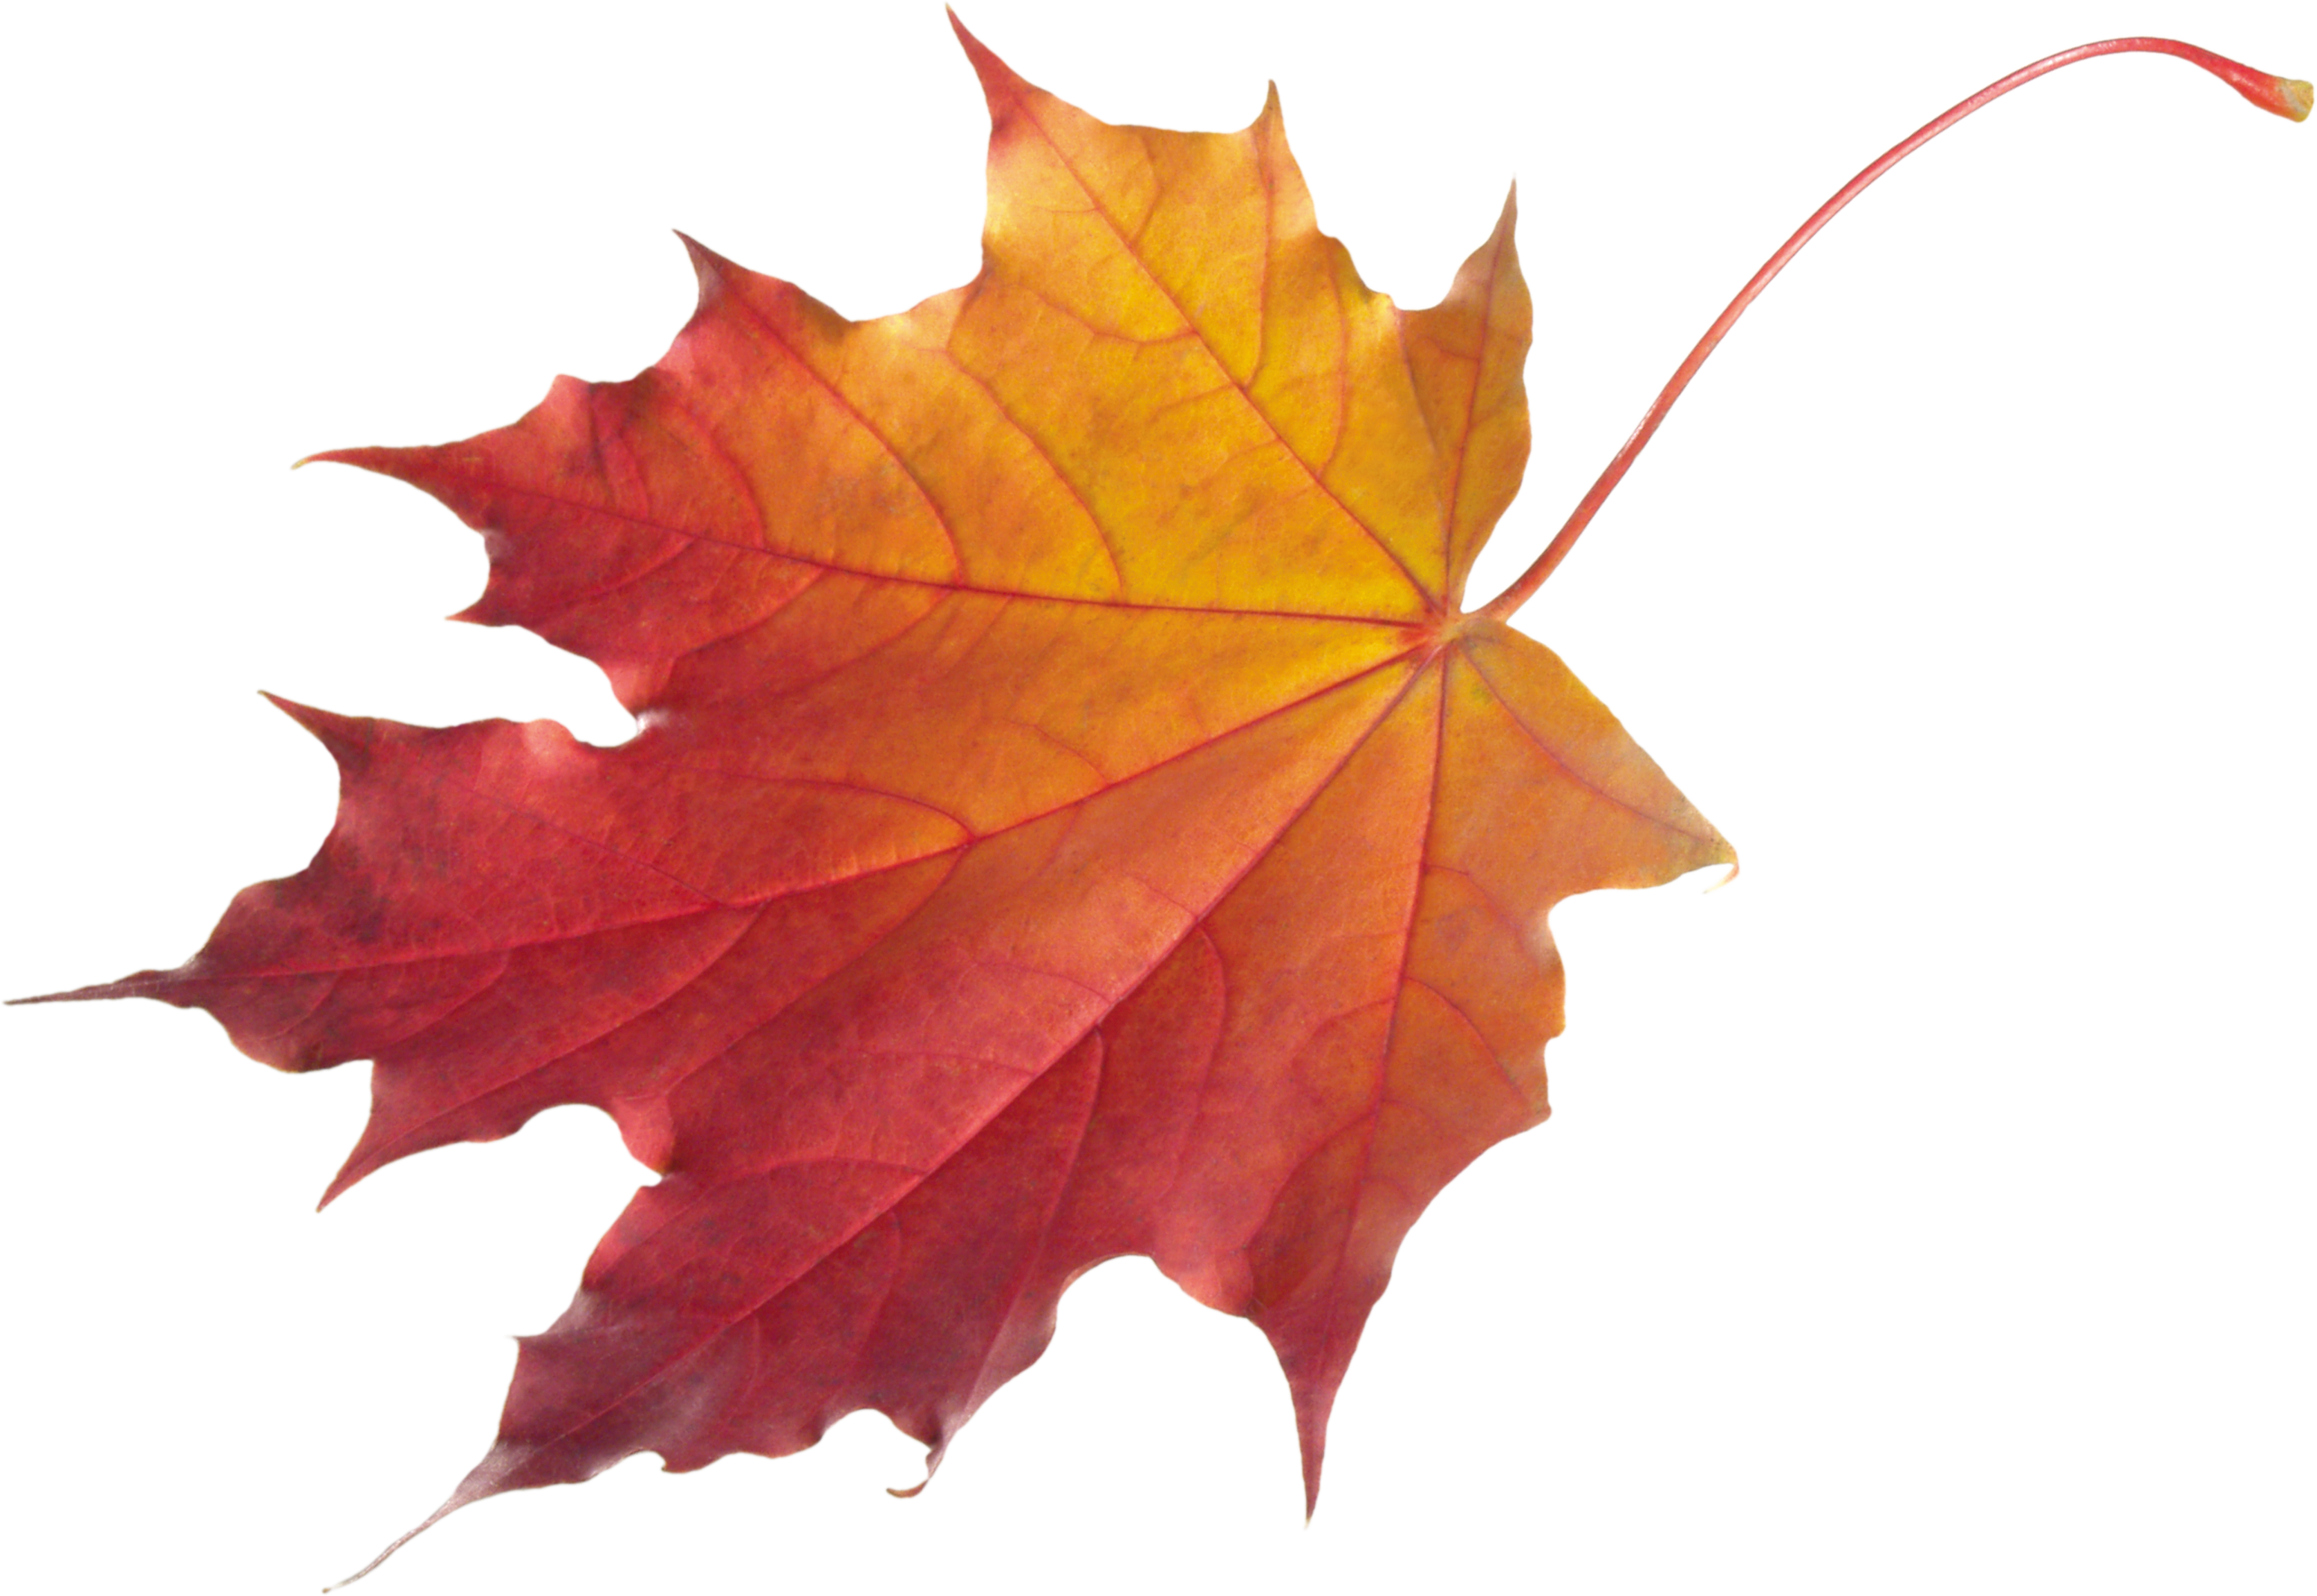 Autumn Leaves HD PNG Transparent Autumn Leaves HD.PNG Images. | PlusPNG